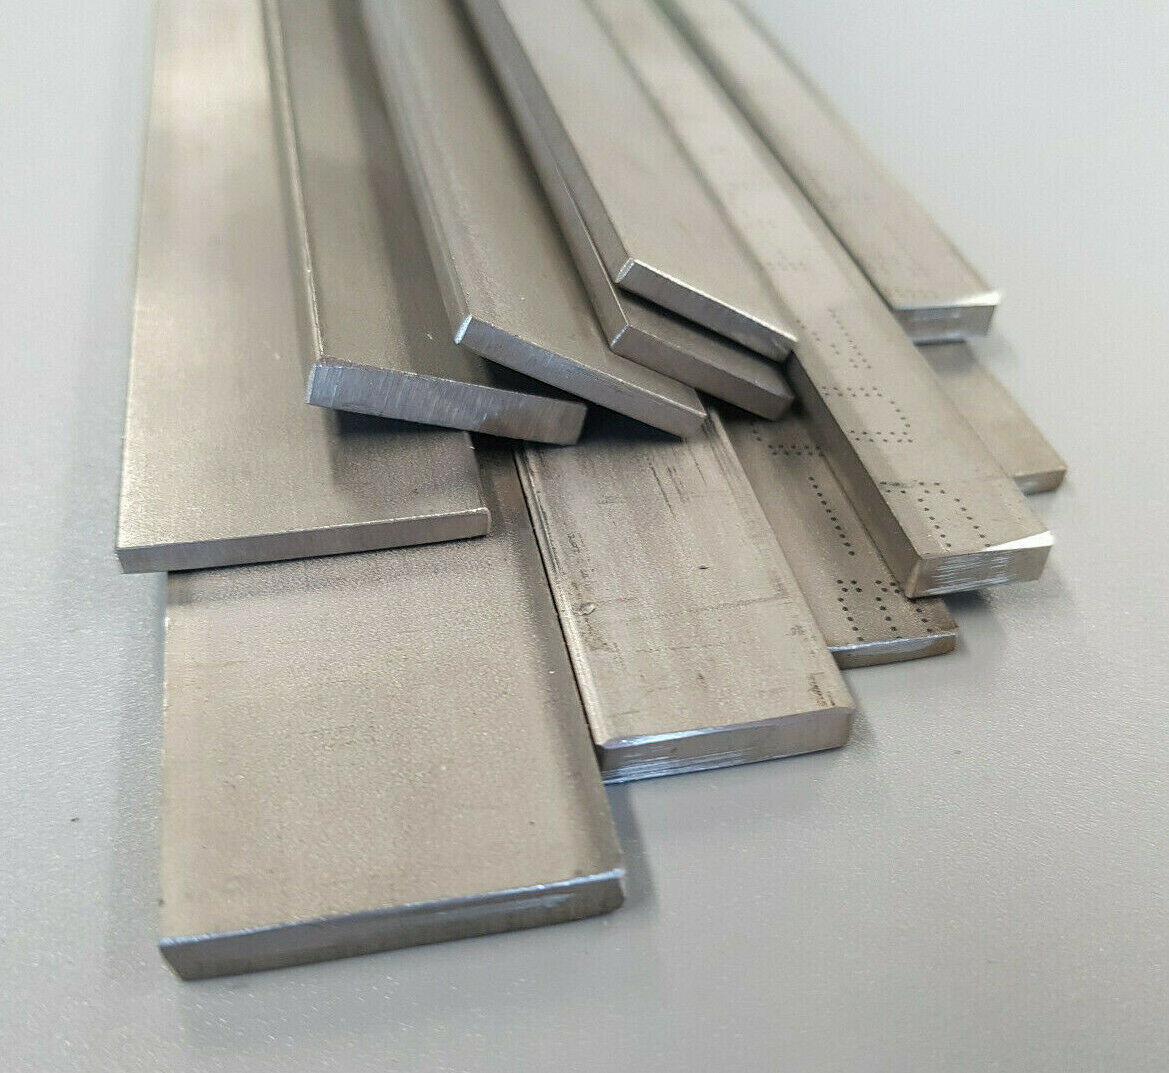 Flat Bar Stainless Steel T304 - 20, 25, 30mm Wide 3 and 5mm Thick Various Length